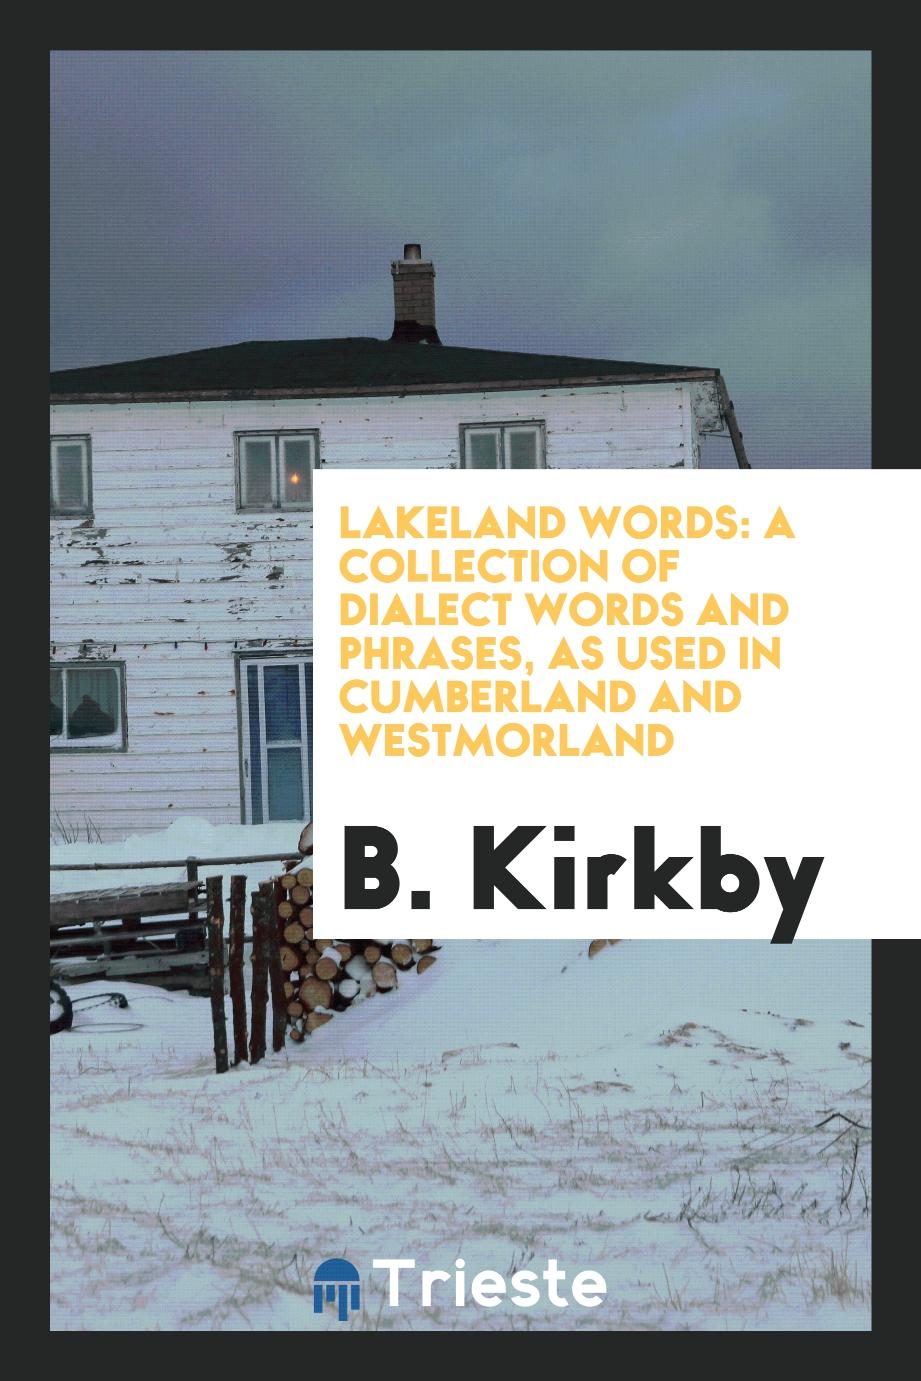 Lakeland Words: A Collection of Dialect Words and Phrases, as Used in Cumberland and Westmorland